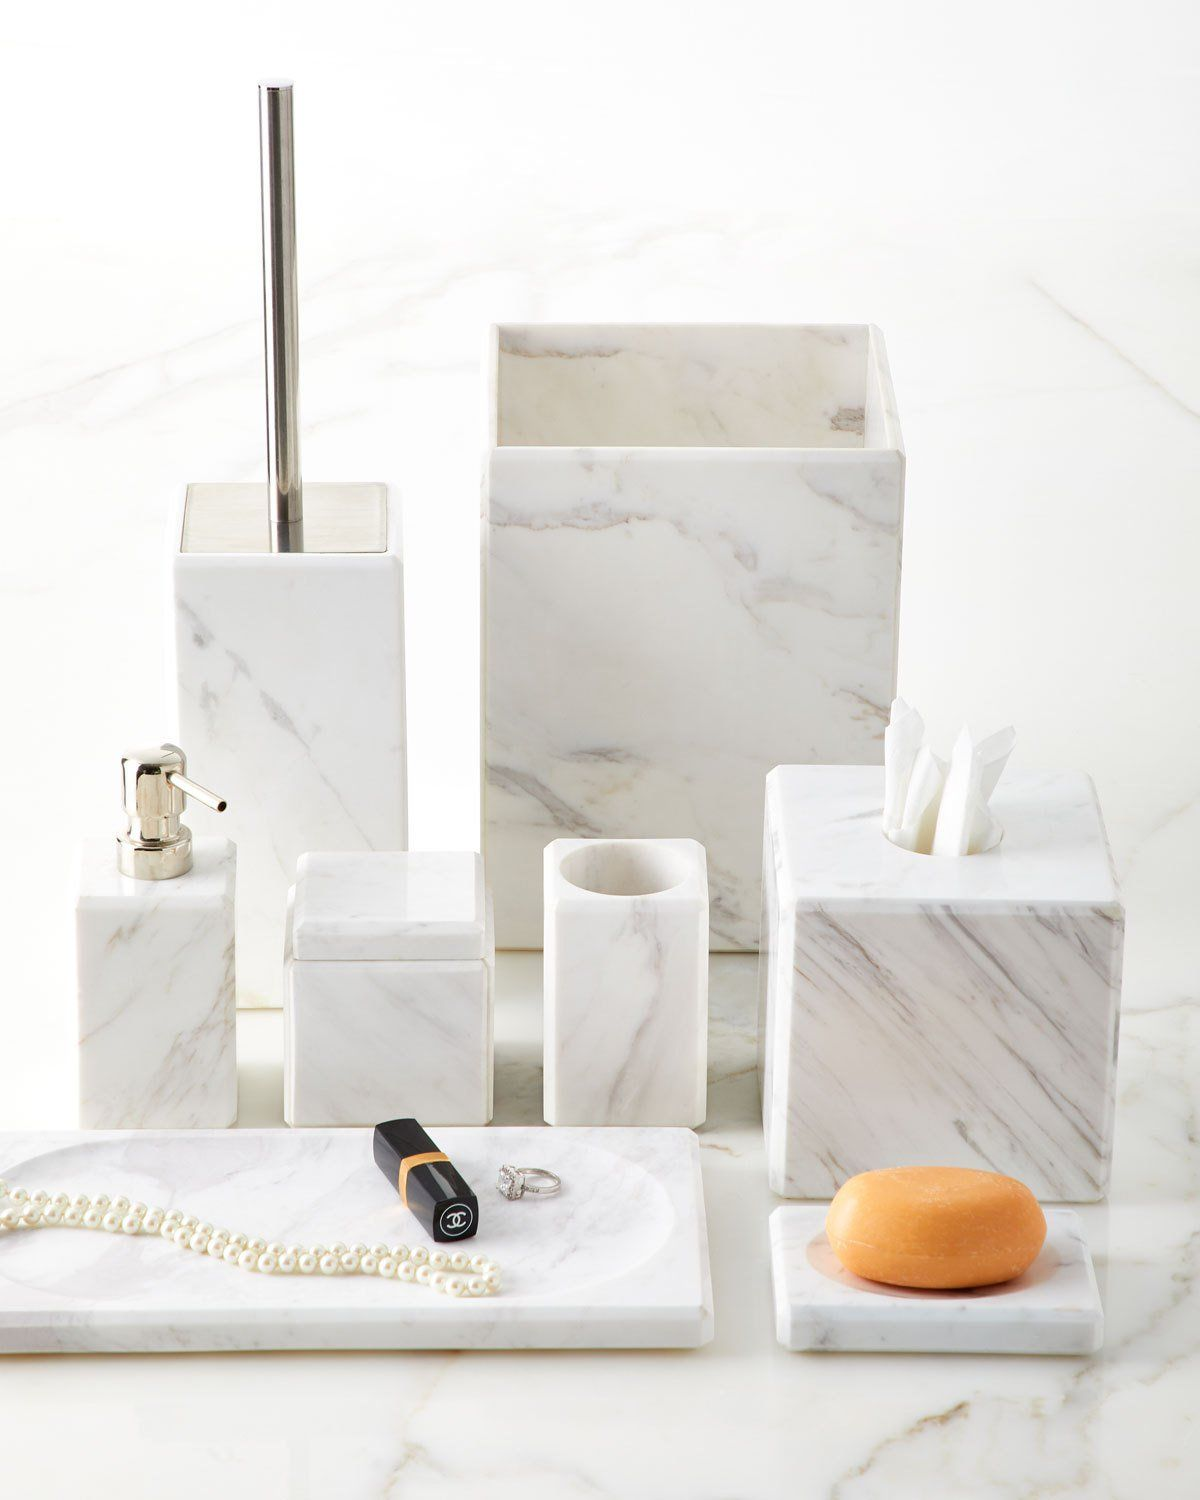 Marble Wastebasket A Place To Call Home Marble Countertops Bathroom Bath Accessories Marble Tile Bathroom